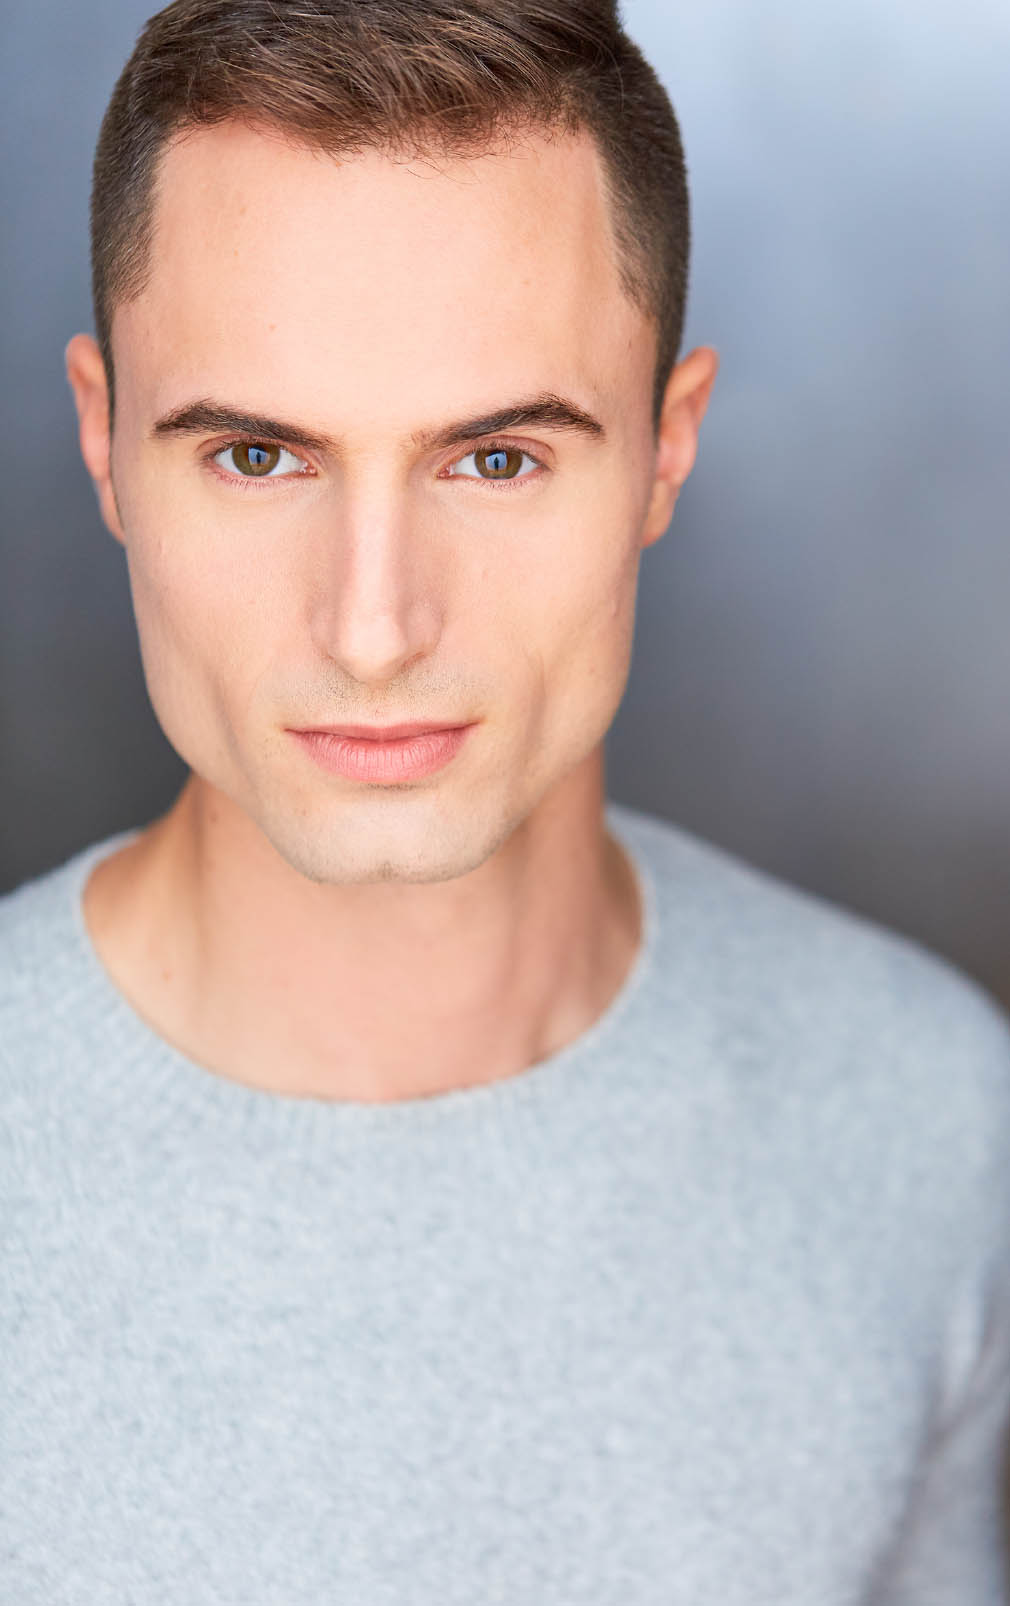 Benjamin Salt (Asher/Butler/Joseph U/S)  is so excited to be making his Citadel Theatre debut in Joseph and the Amazing Technicolor Dreamcoat. Benjamin is a Massachusetts born singer/songwriter, with past theatre credits including Songs for a New World, West Side Story, and Godspell. He is thankful for all of the unconditional love and support he receives from his friends and family. Soli Deo gloria! www.benjaminsalt.com